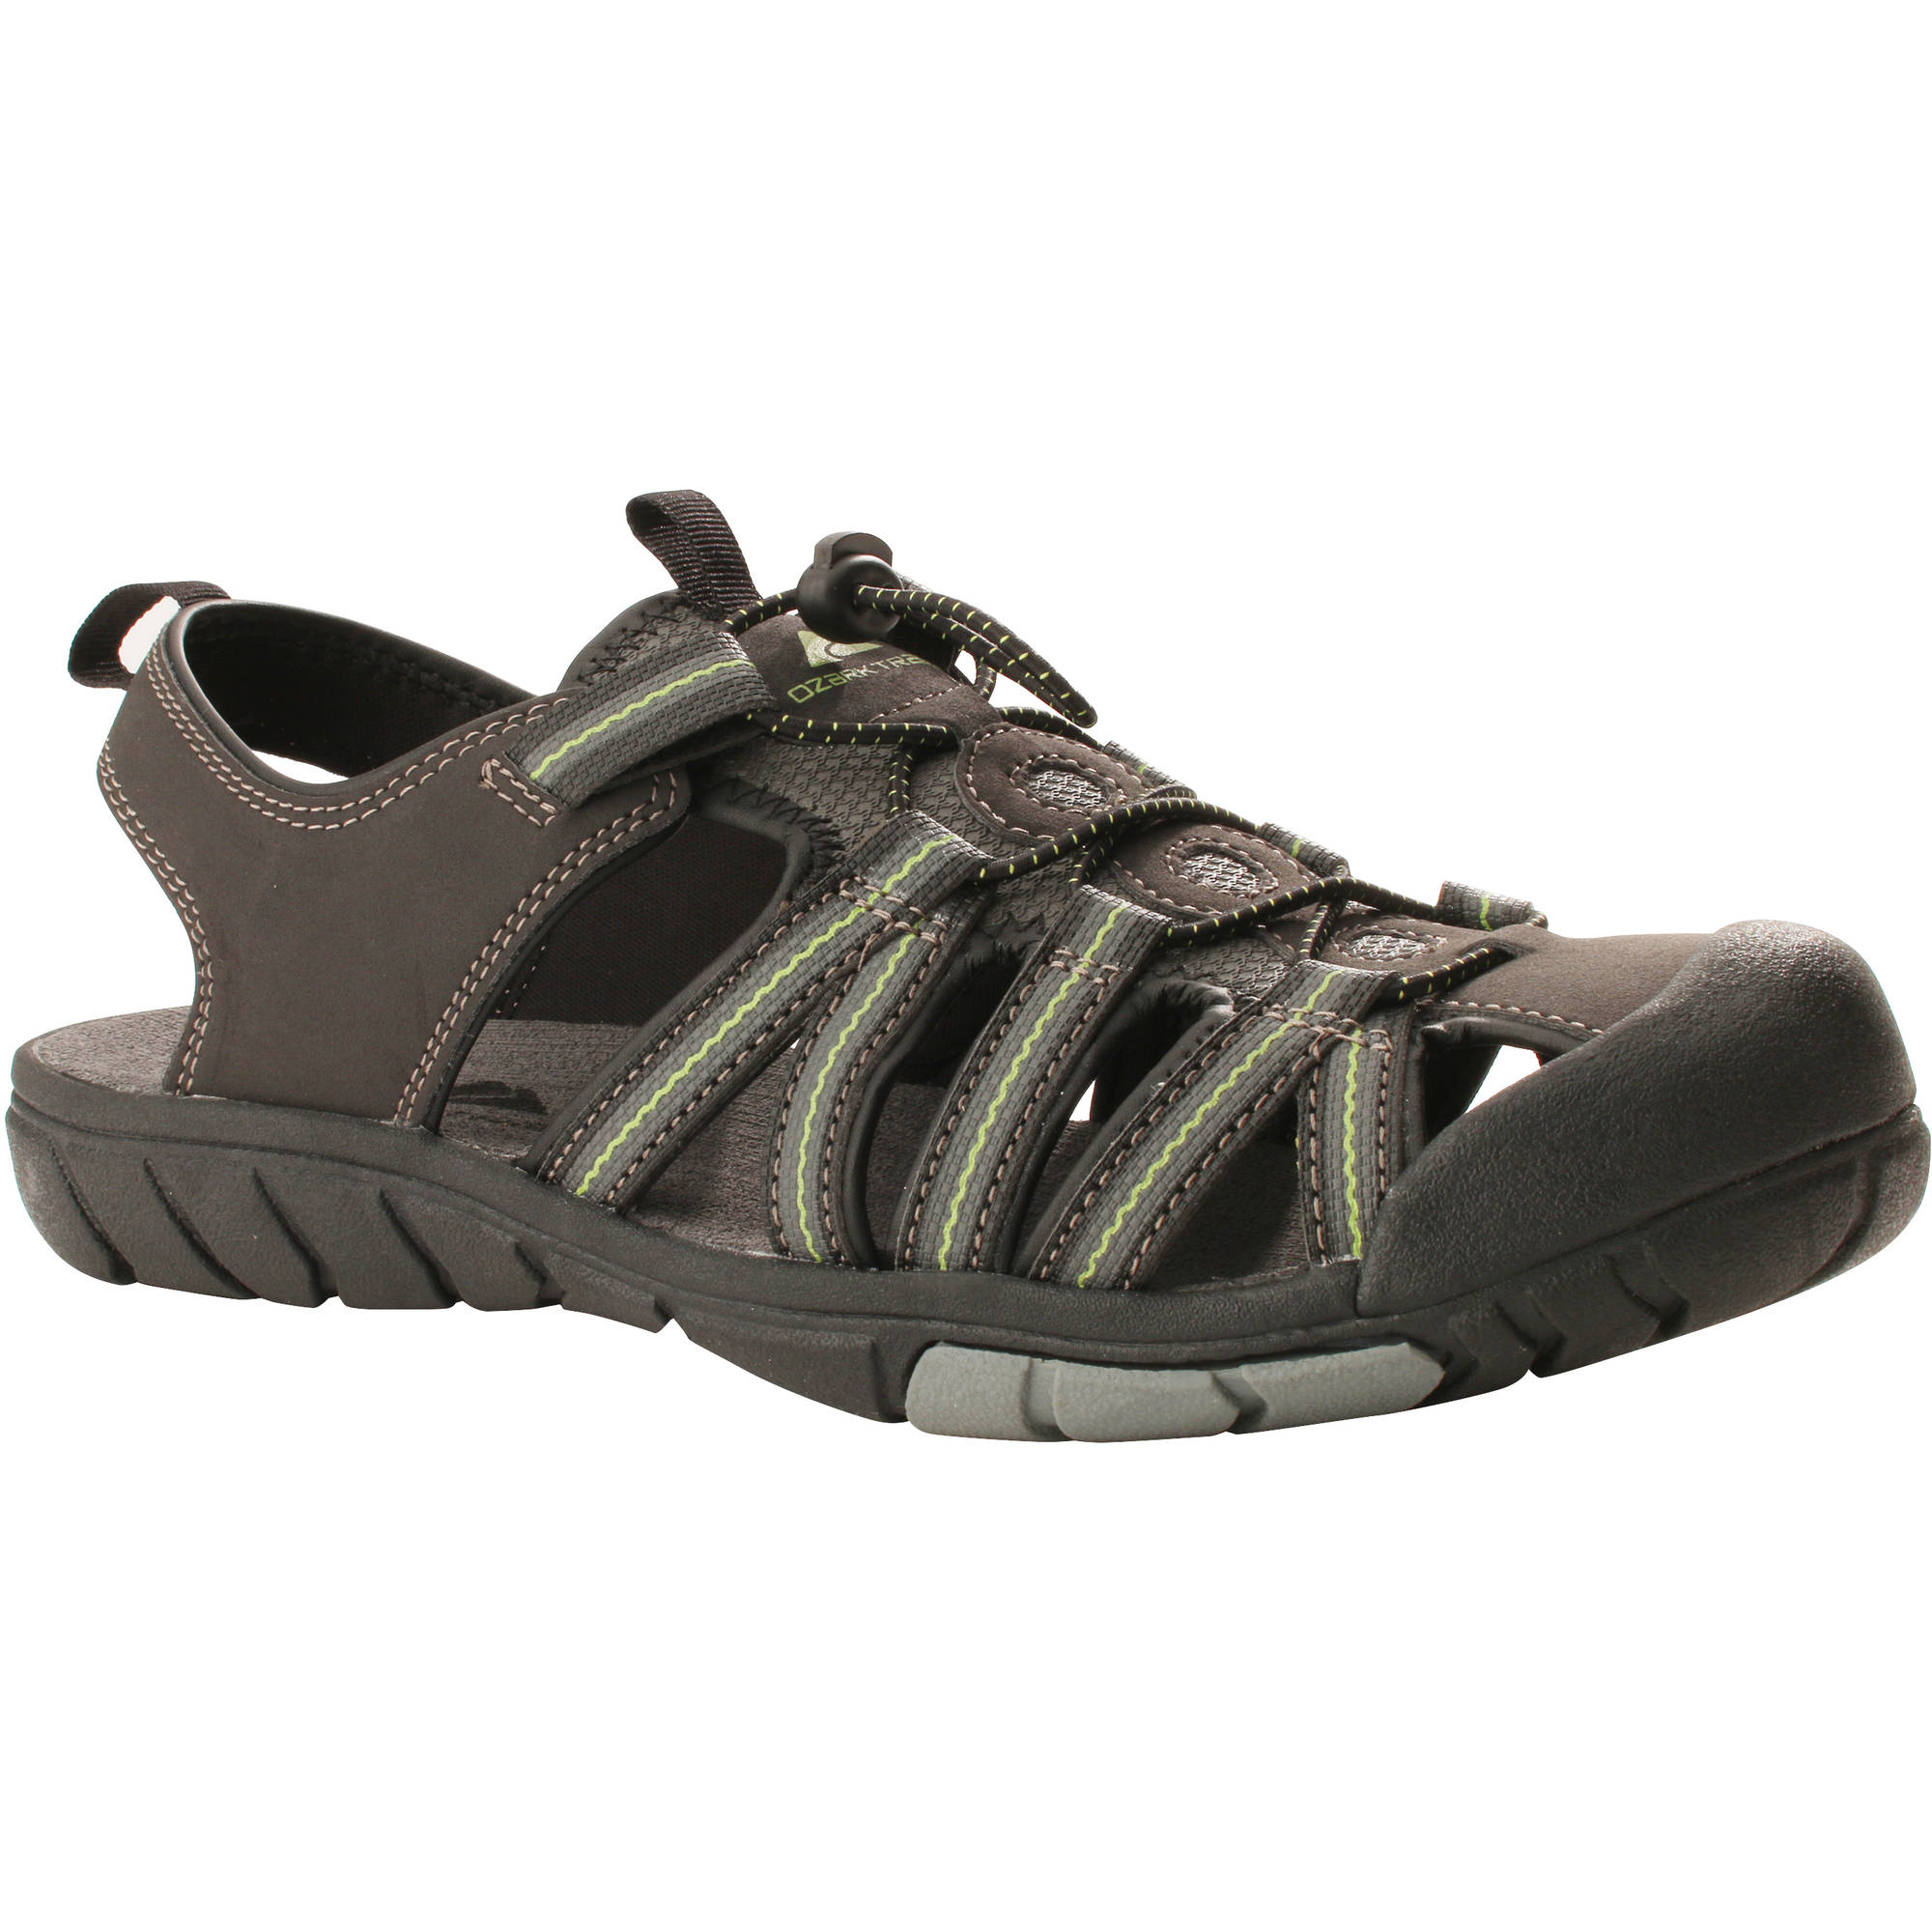 Ozark Trail Men's Bumptoe Sandal